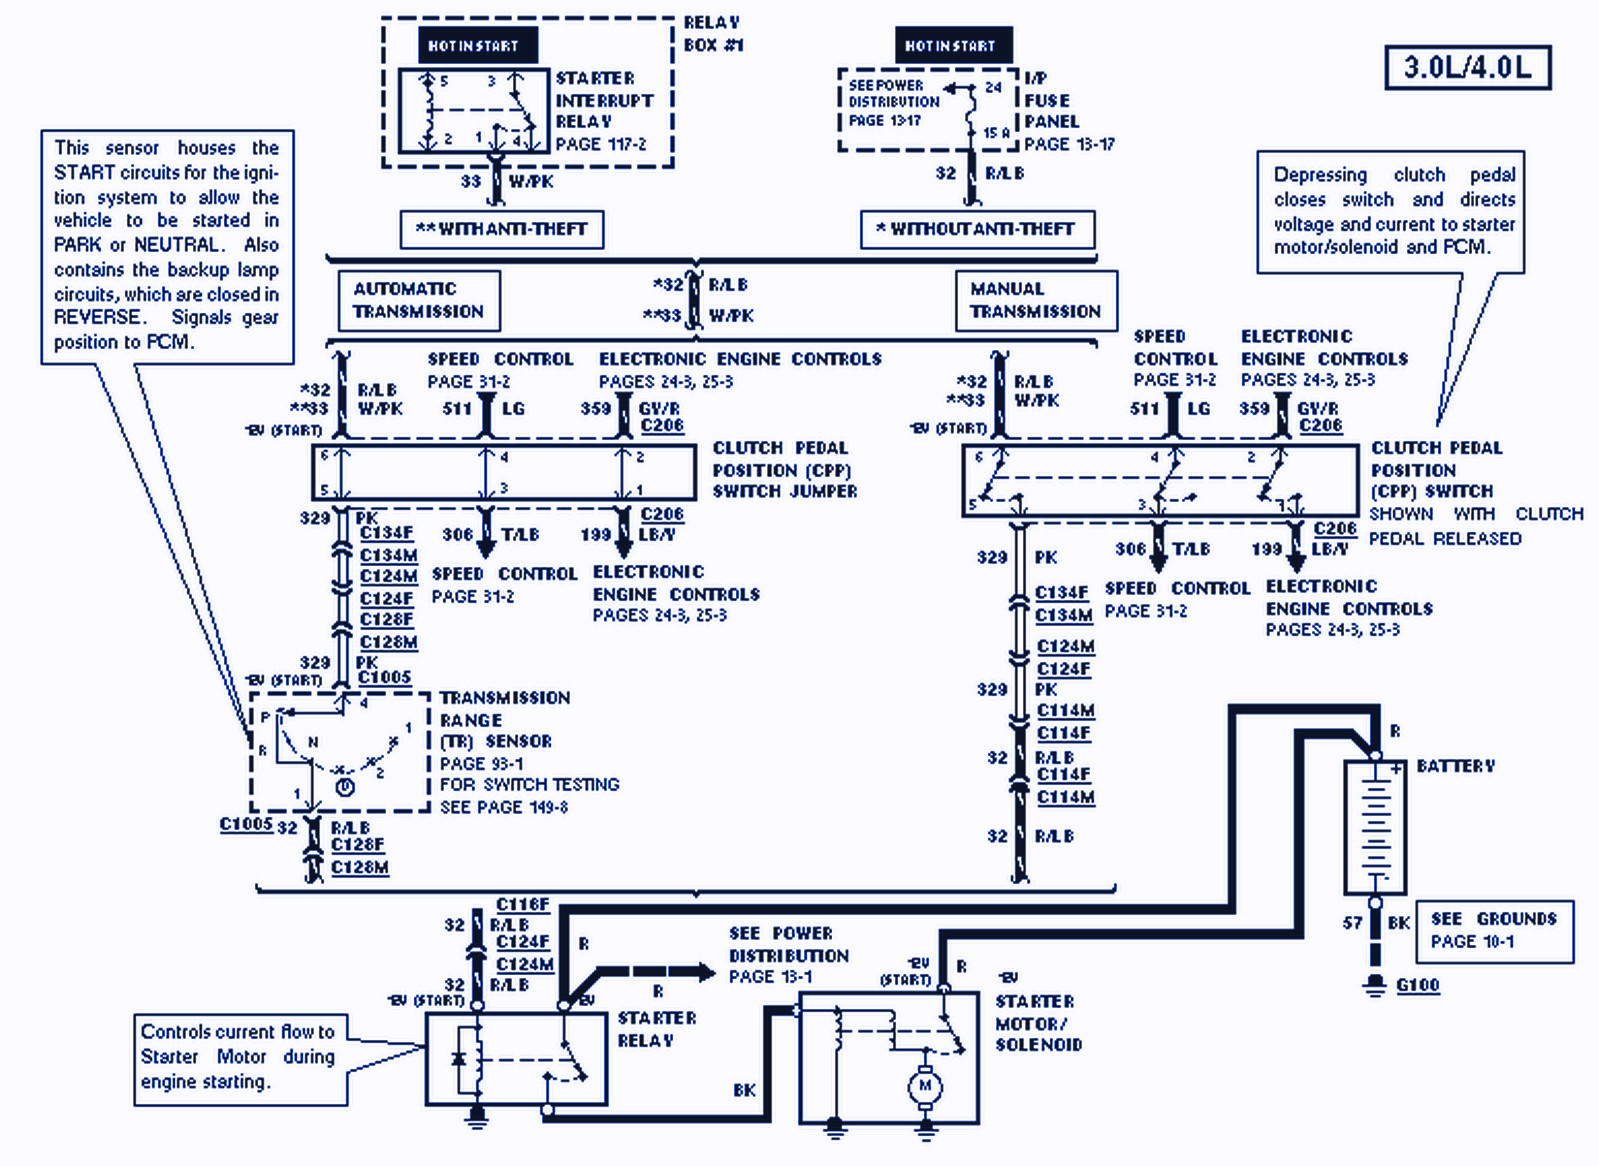 medium resolution of 1995 mercury tracer engine diagram wiring diagram1984 mercury tracer wiring diagram best wiring library1995 mercury tracer